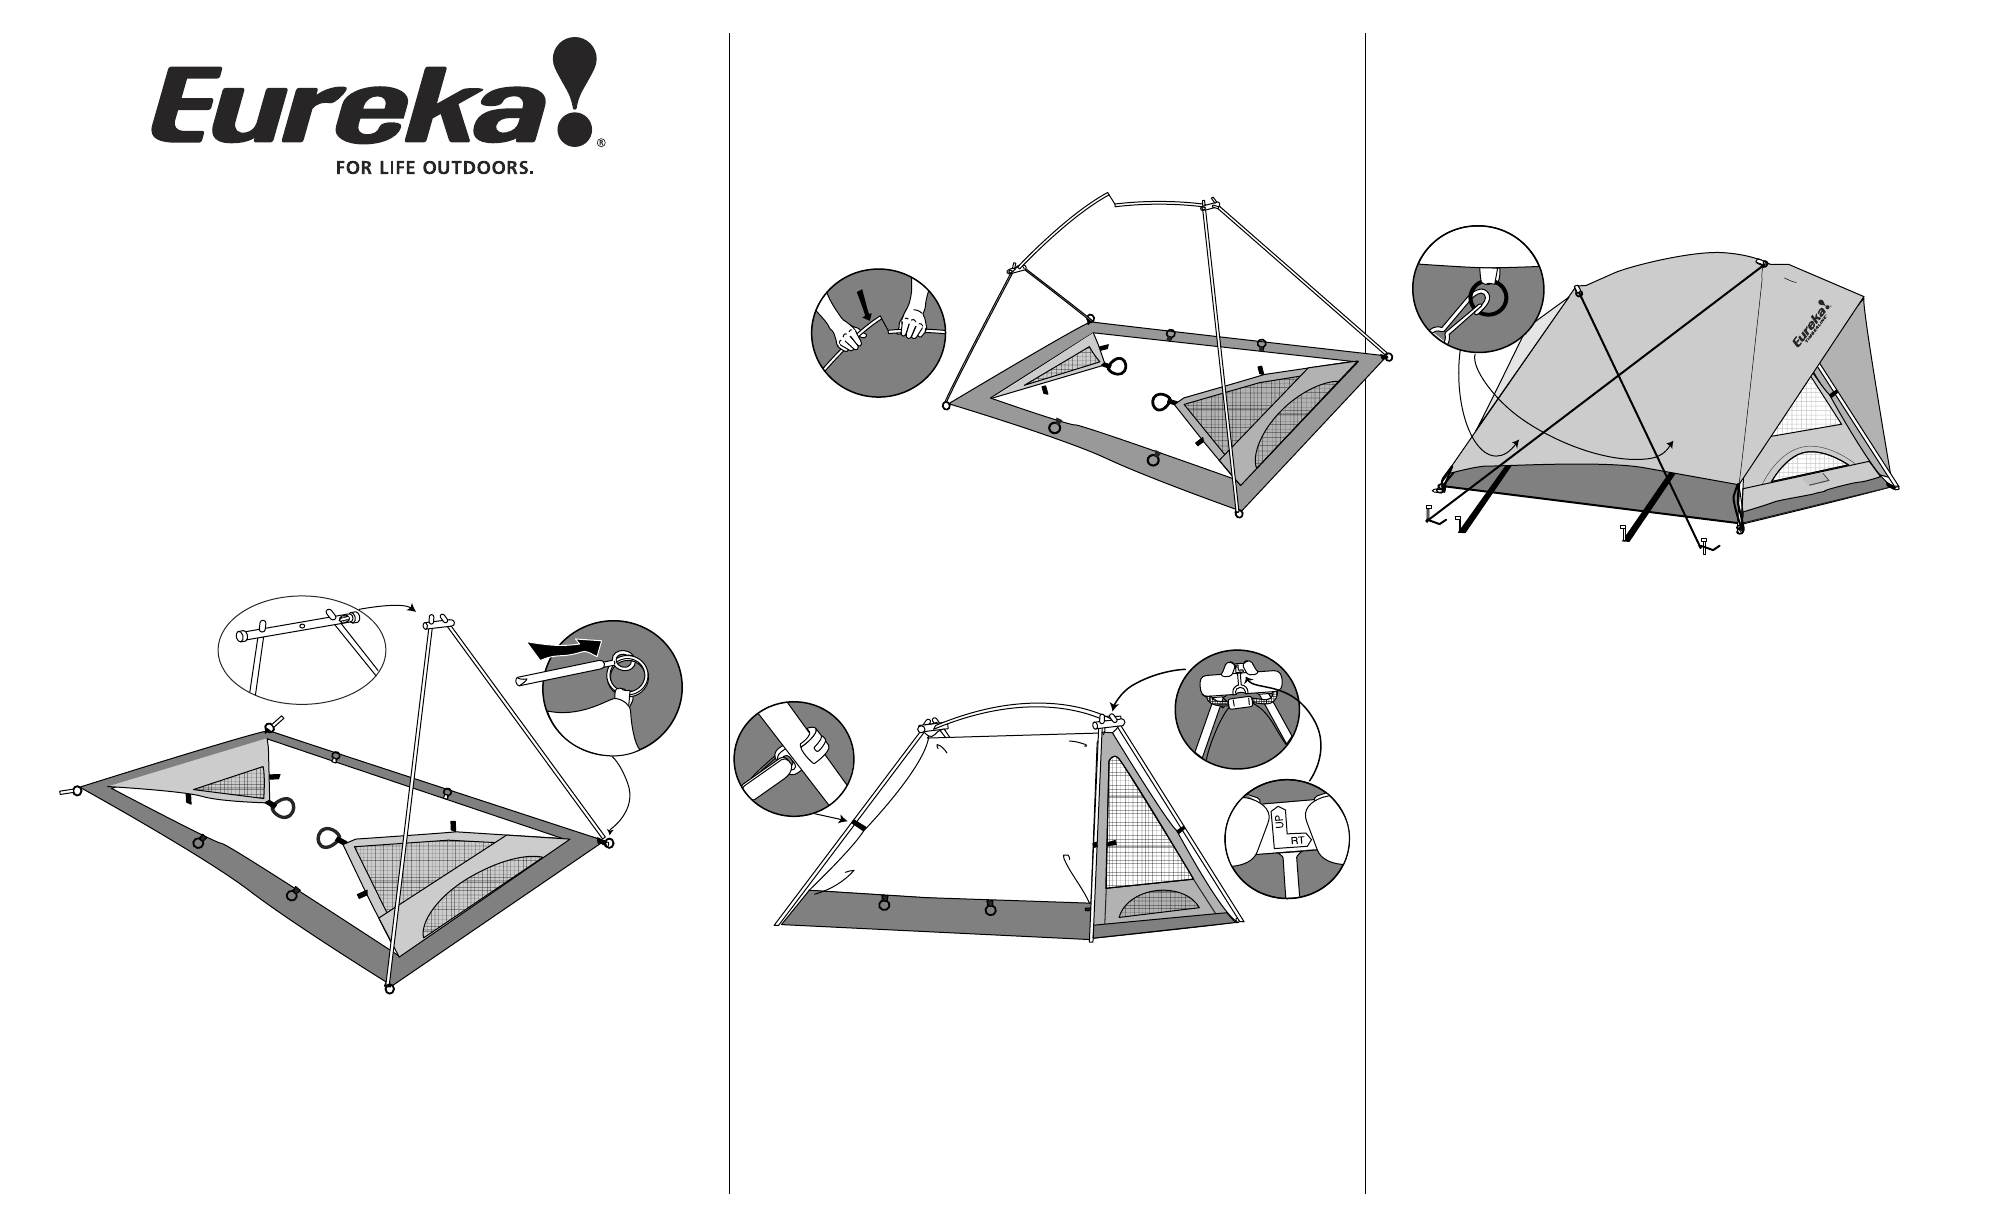 Eureka Tents Tent Timberline Outfitter User Guide Manualsonline